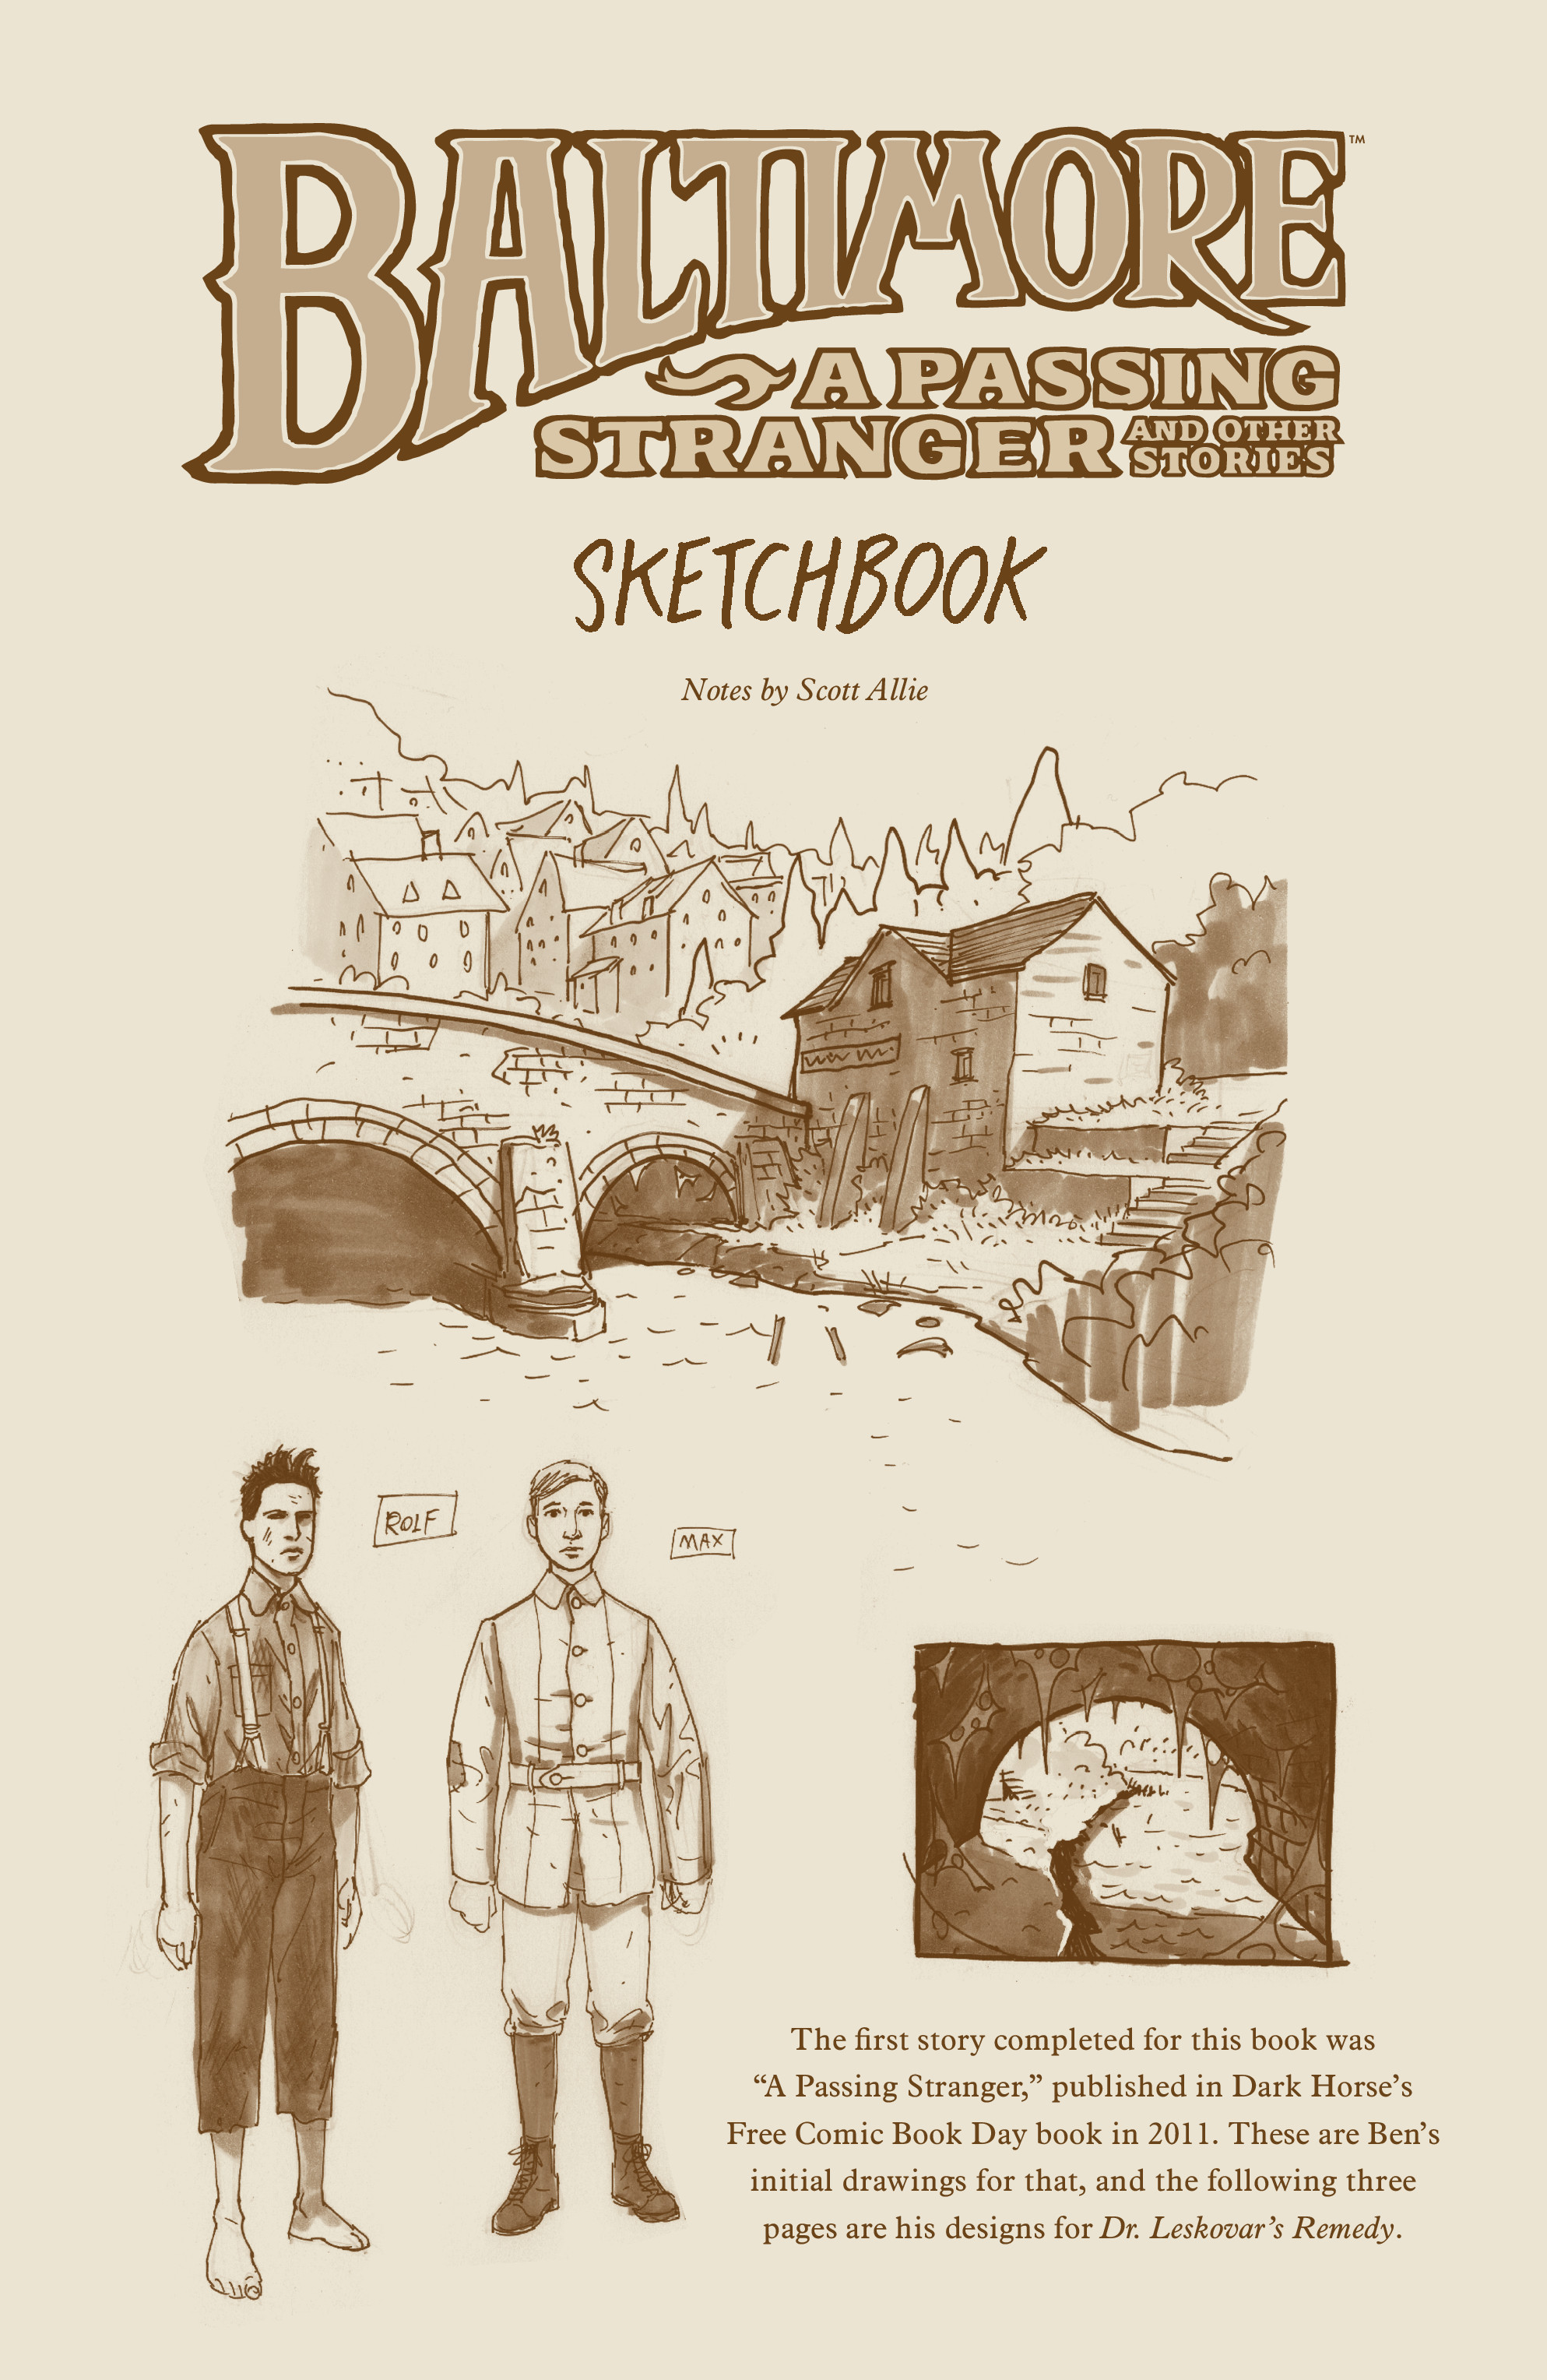 Read online Baltimore Volume 3: A Passing Stranger and Other Stories comic -  Issue # Full - 143